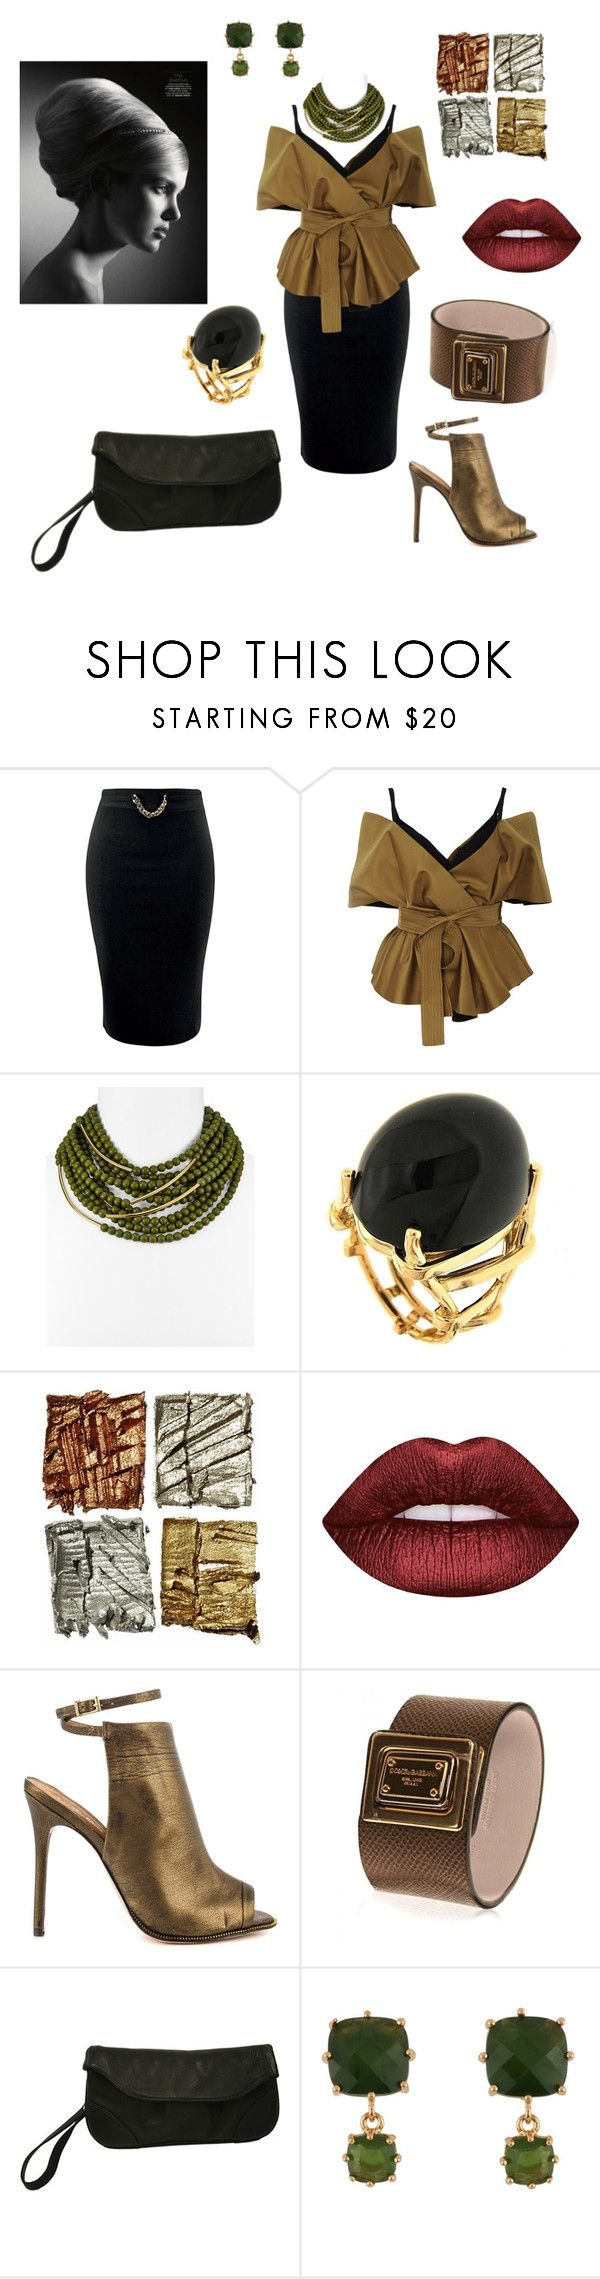 """""""hips drama nature"""" by explorer-14860390596 on Polyvore featuring мода, Acler, Fairchild Baldwin, Valentin Magro, Lime Crime, L.A.M.B., Dolce&Gabbana, Piel Leather и Patchington"""